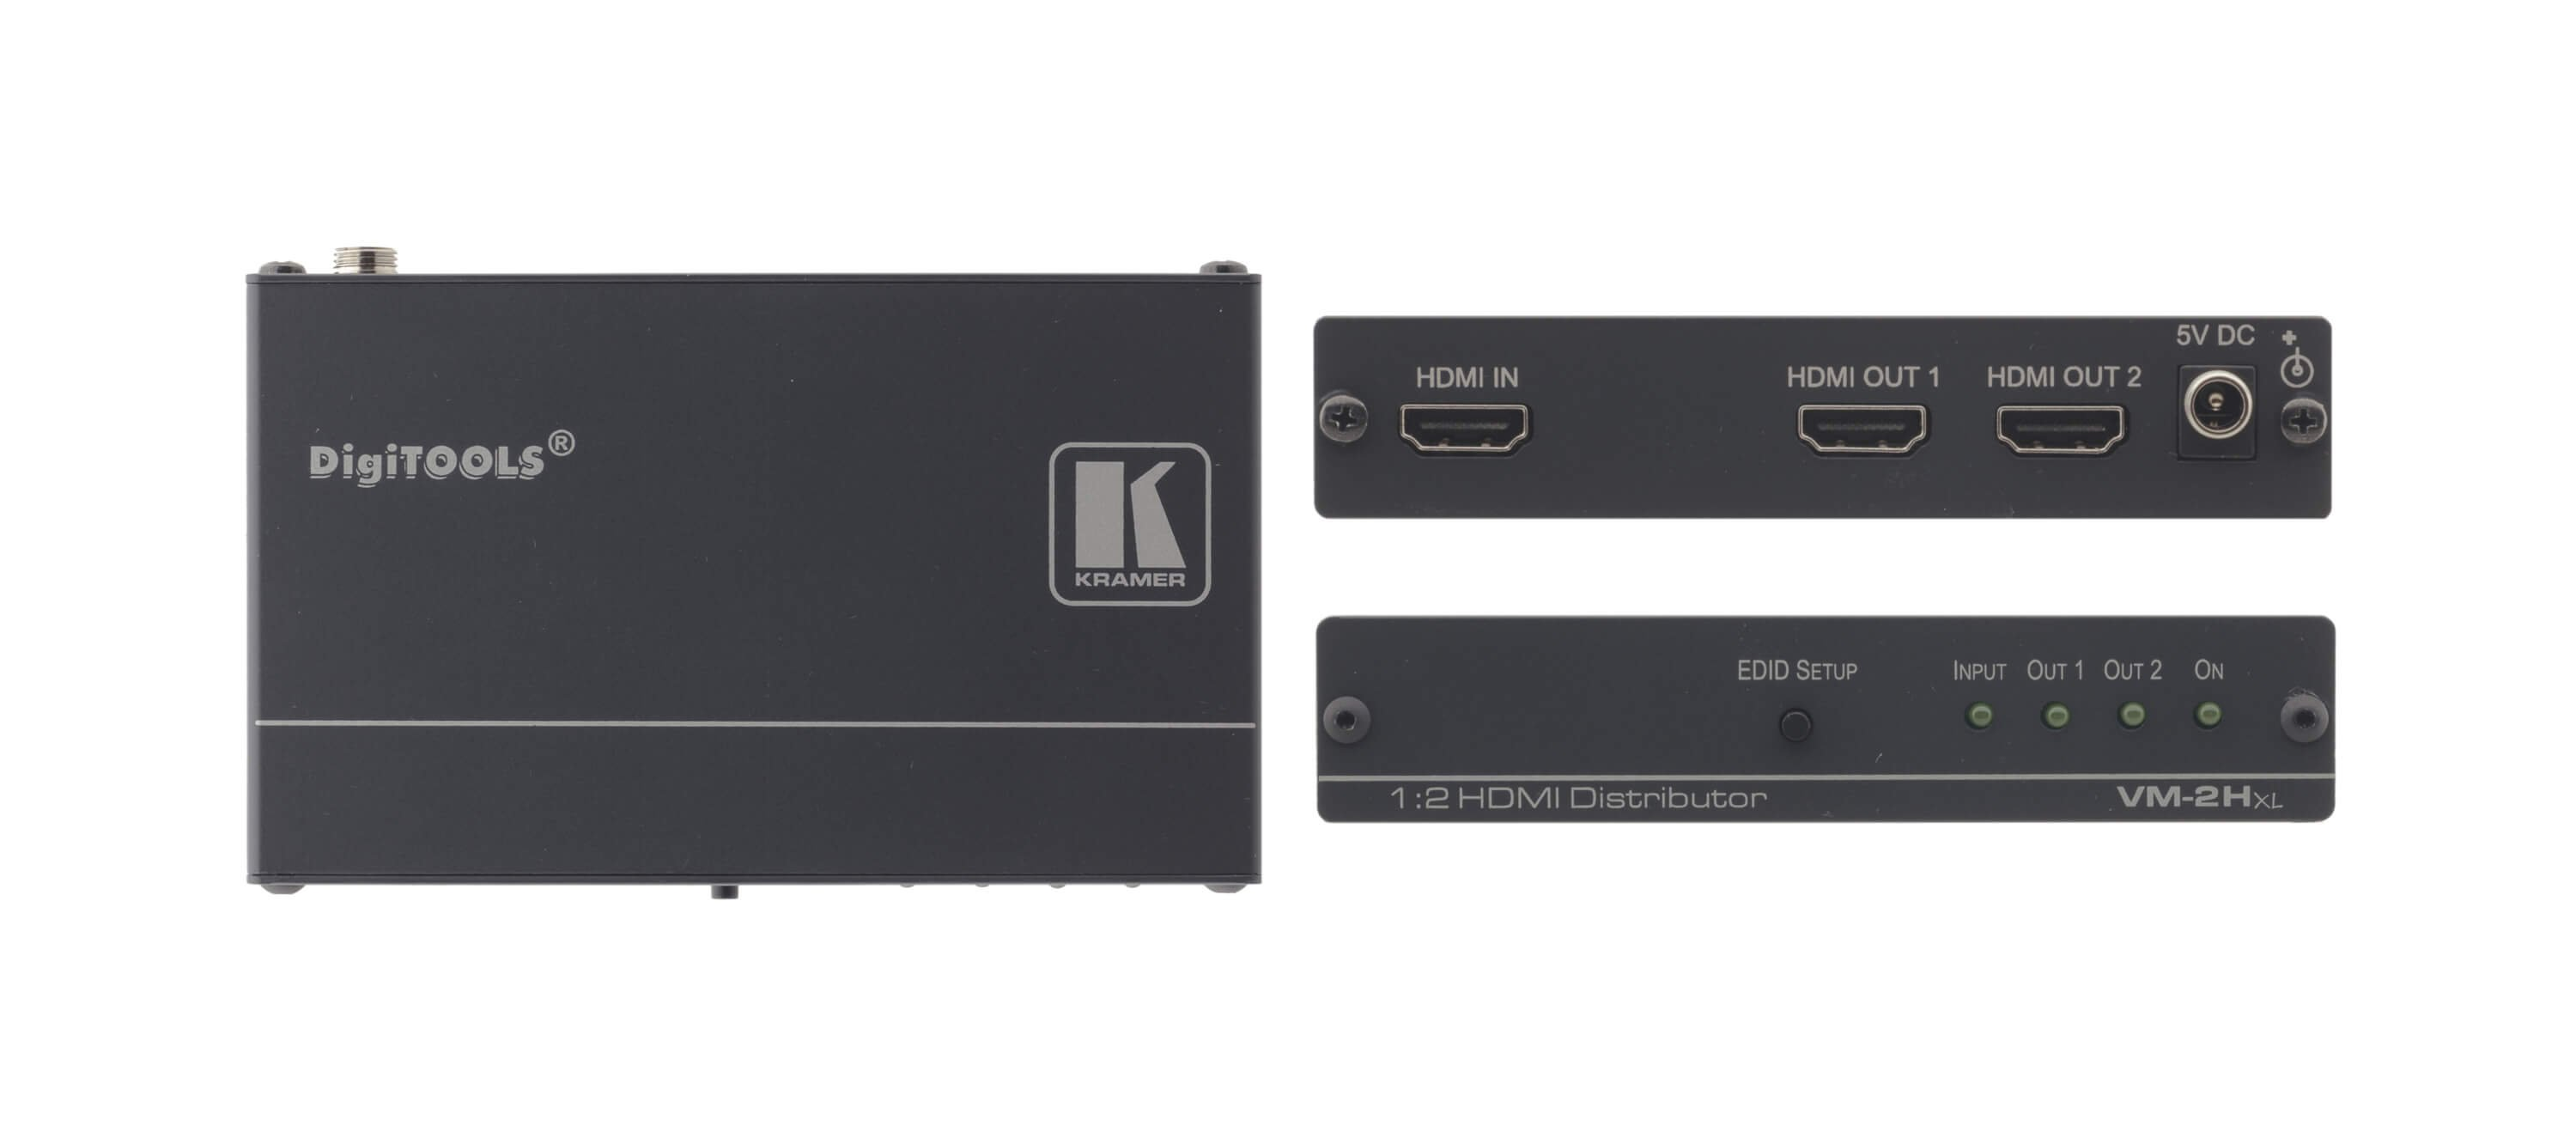 1:2 HDMI Distribution Amplifier